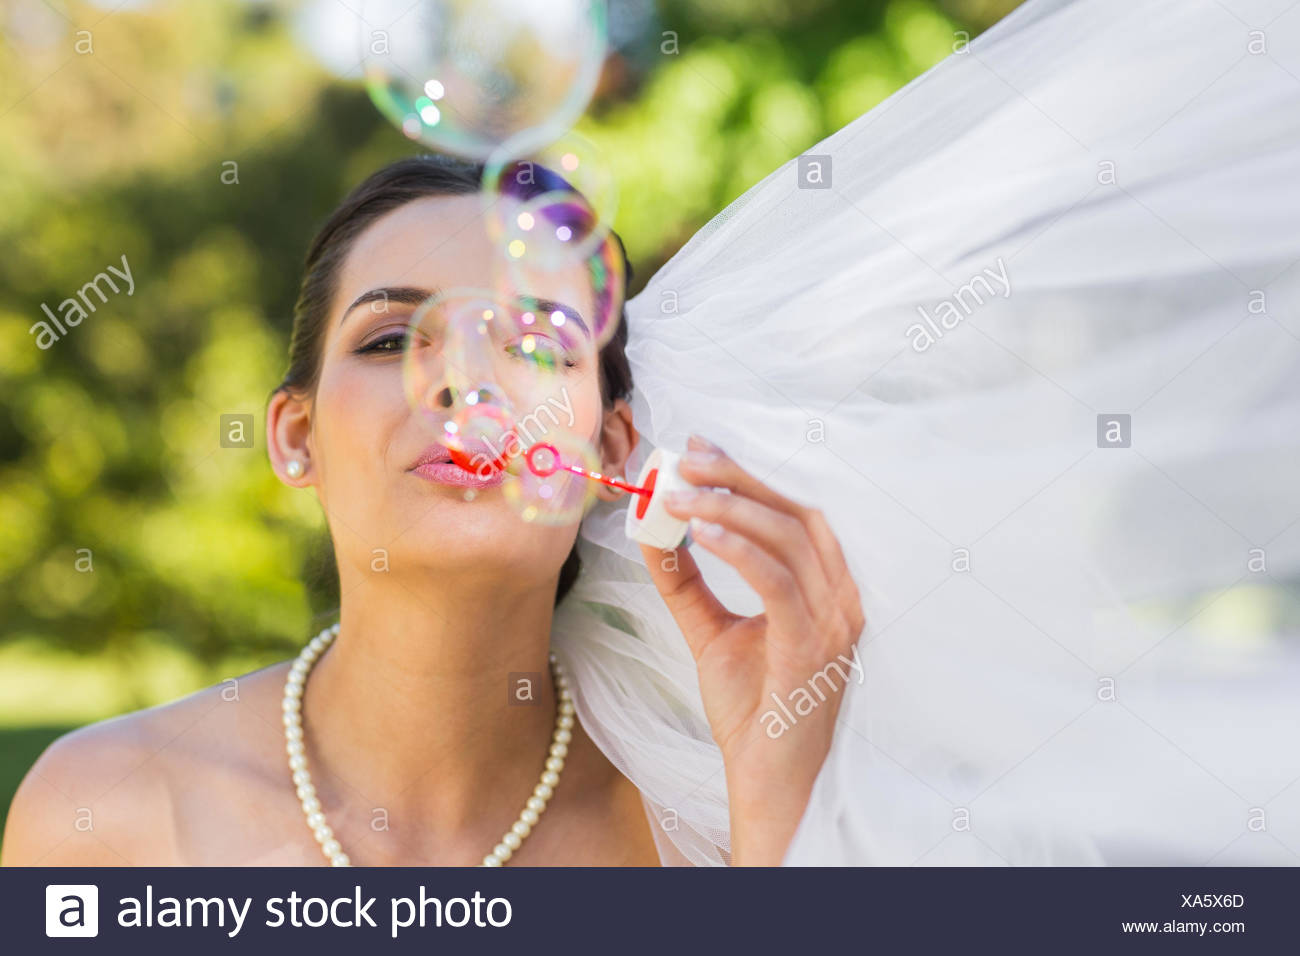 Bride blowing soap bubbles in park - Stock Image